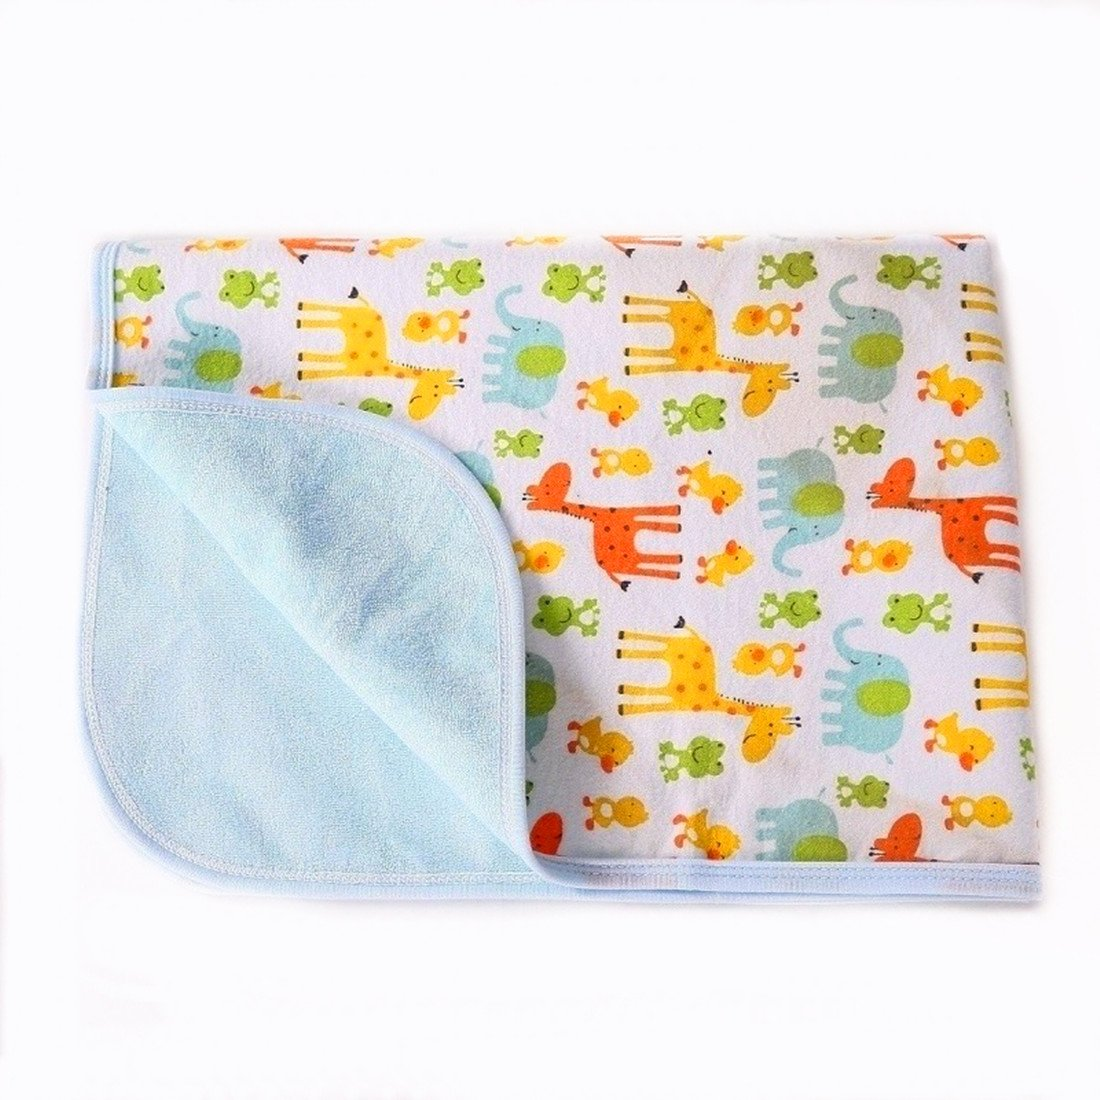 Portable Changing Pad Waterproof Diaper Change Mat Large Size Multi-Function [Home & Travel] Mat Any Places Bed Play Stroller Crib Car Mattress Pad Cover